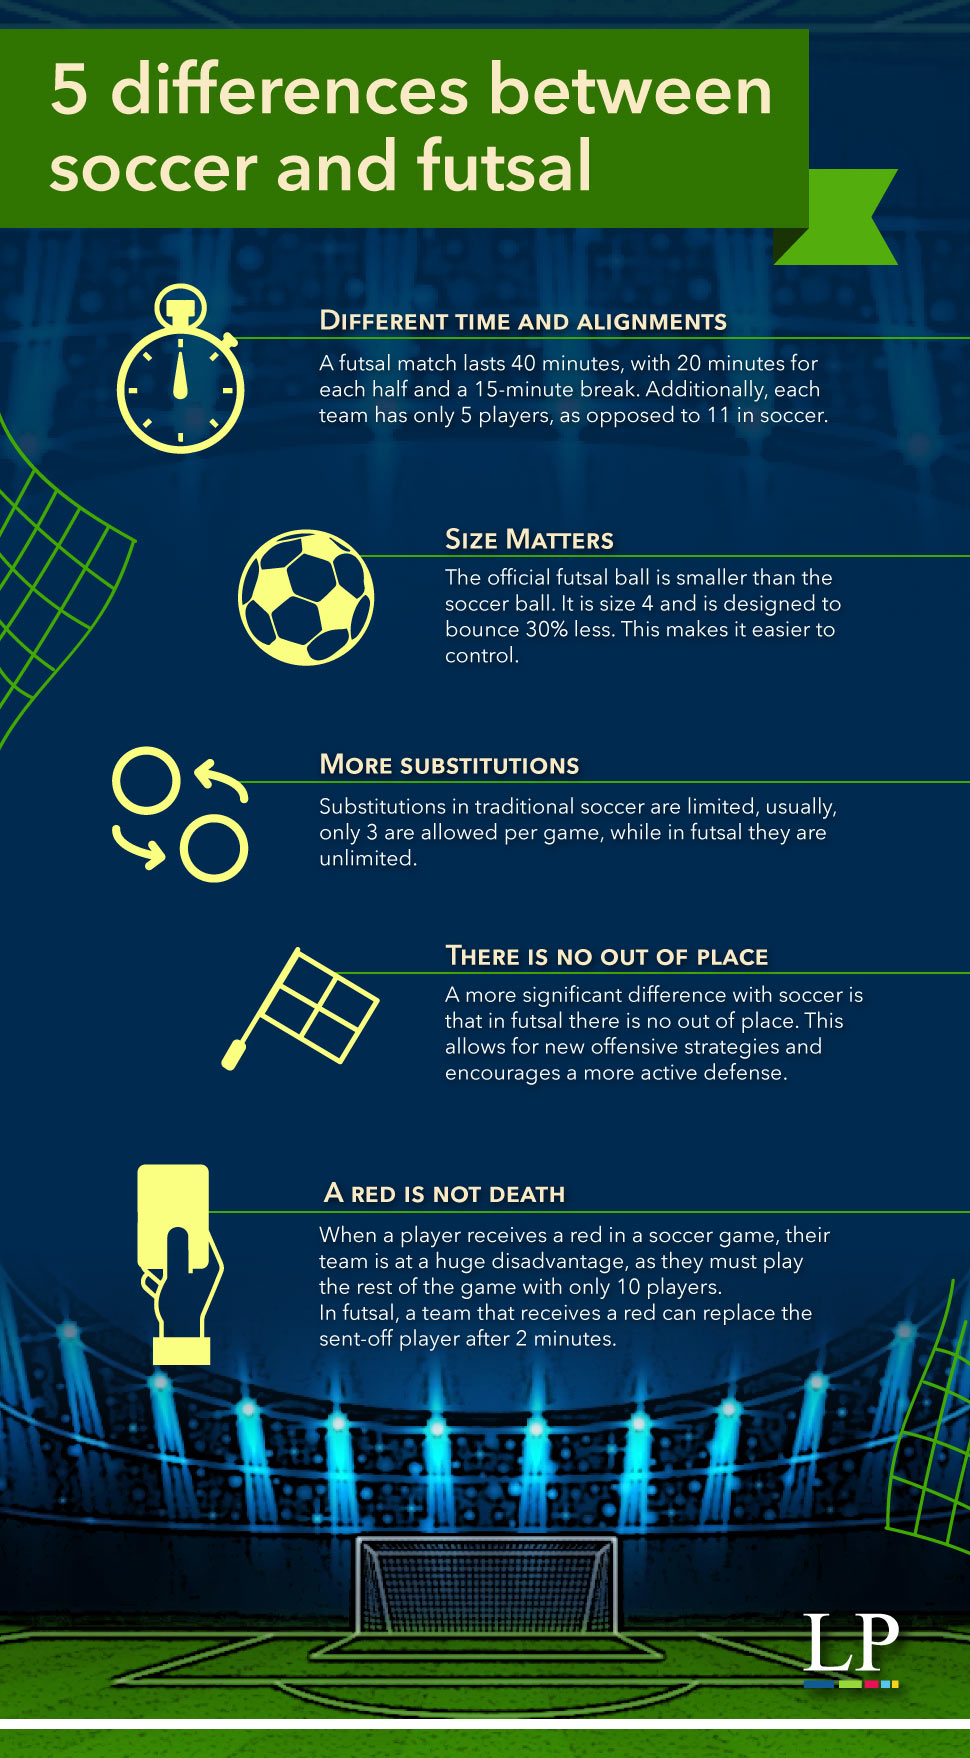 Differences between soccer and futsal